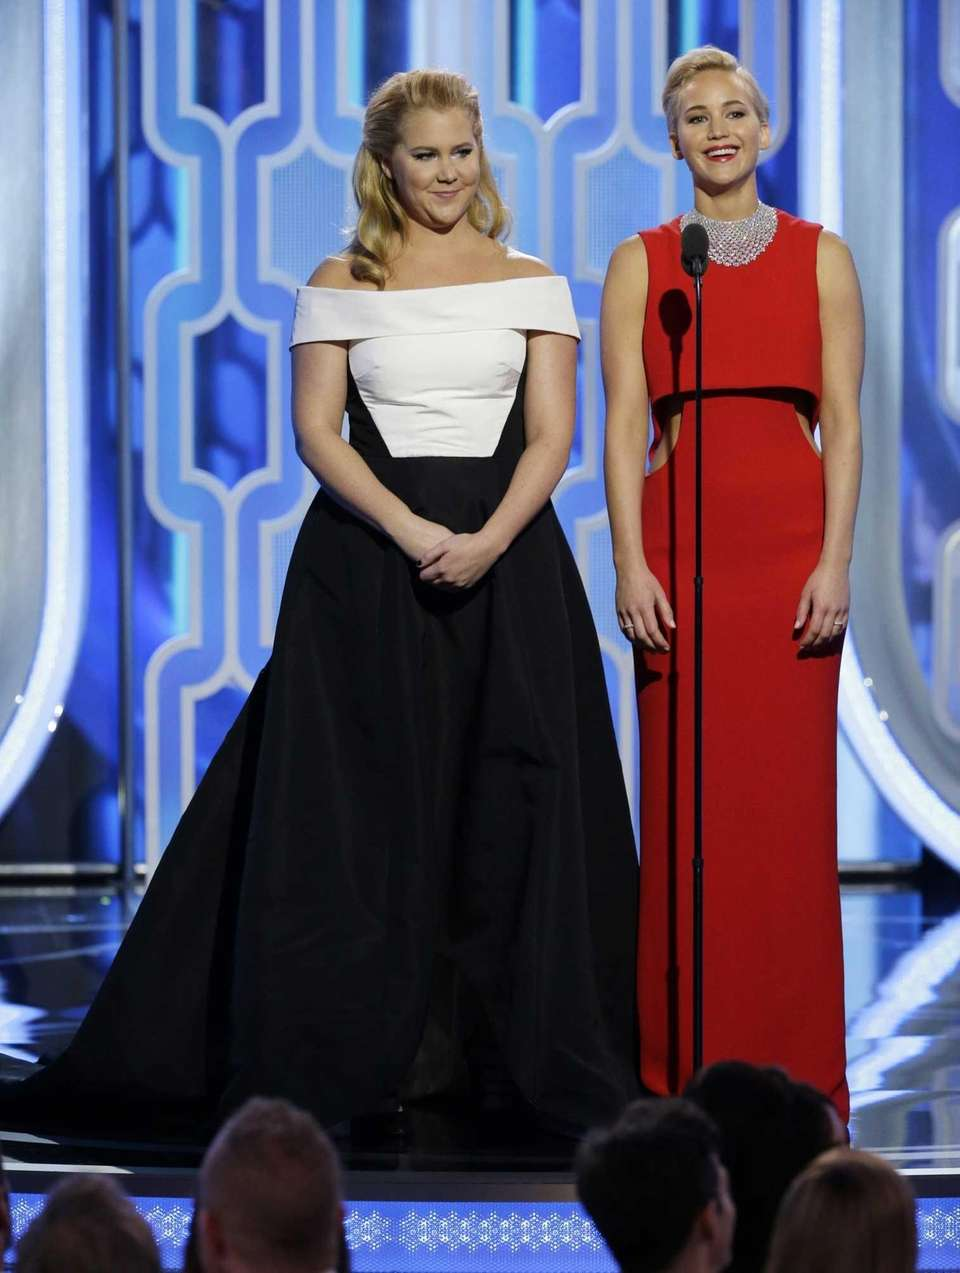 Amy Schemer and Jennifer Lawrence introduce their nominated